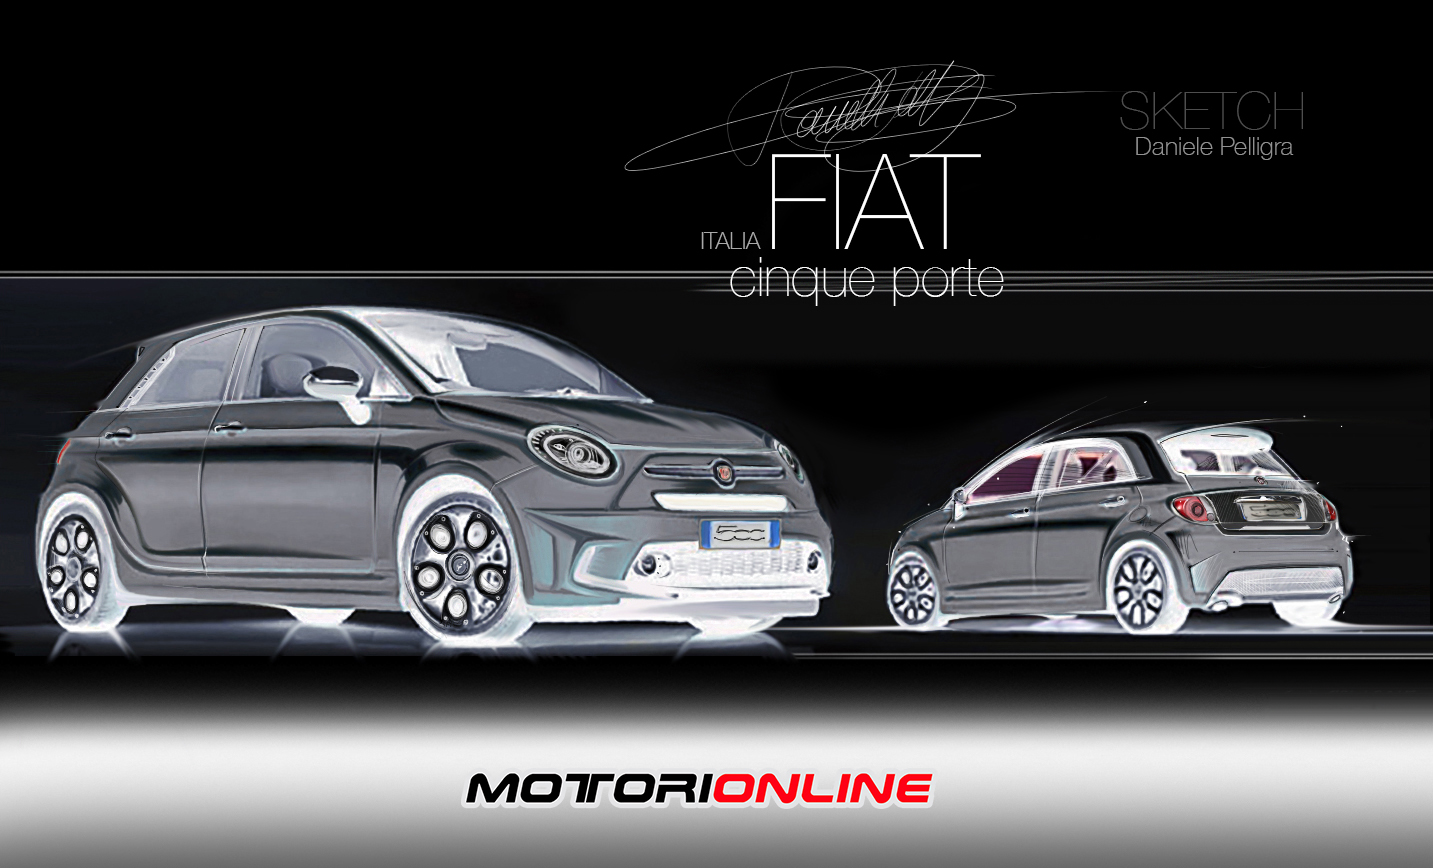 fiat 500 5 porte rendering by daniele pelligra foto 4 di 5. Black Bedroom Furniture Sets. Home Design Ideas